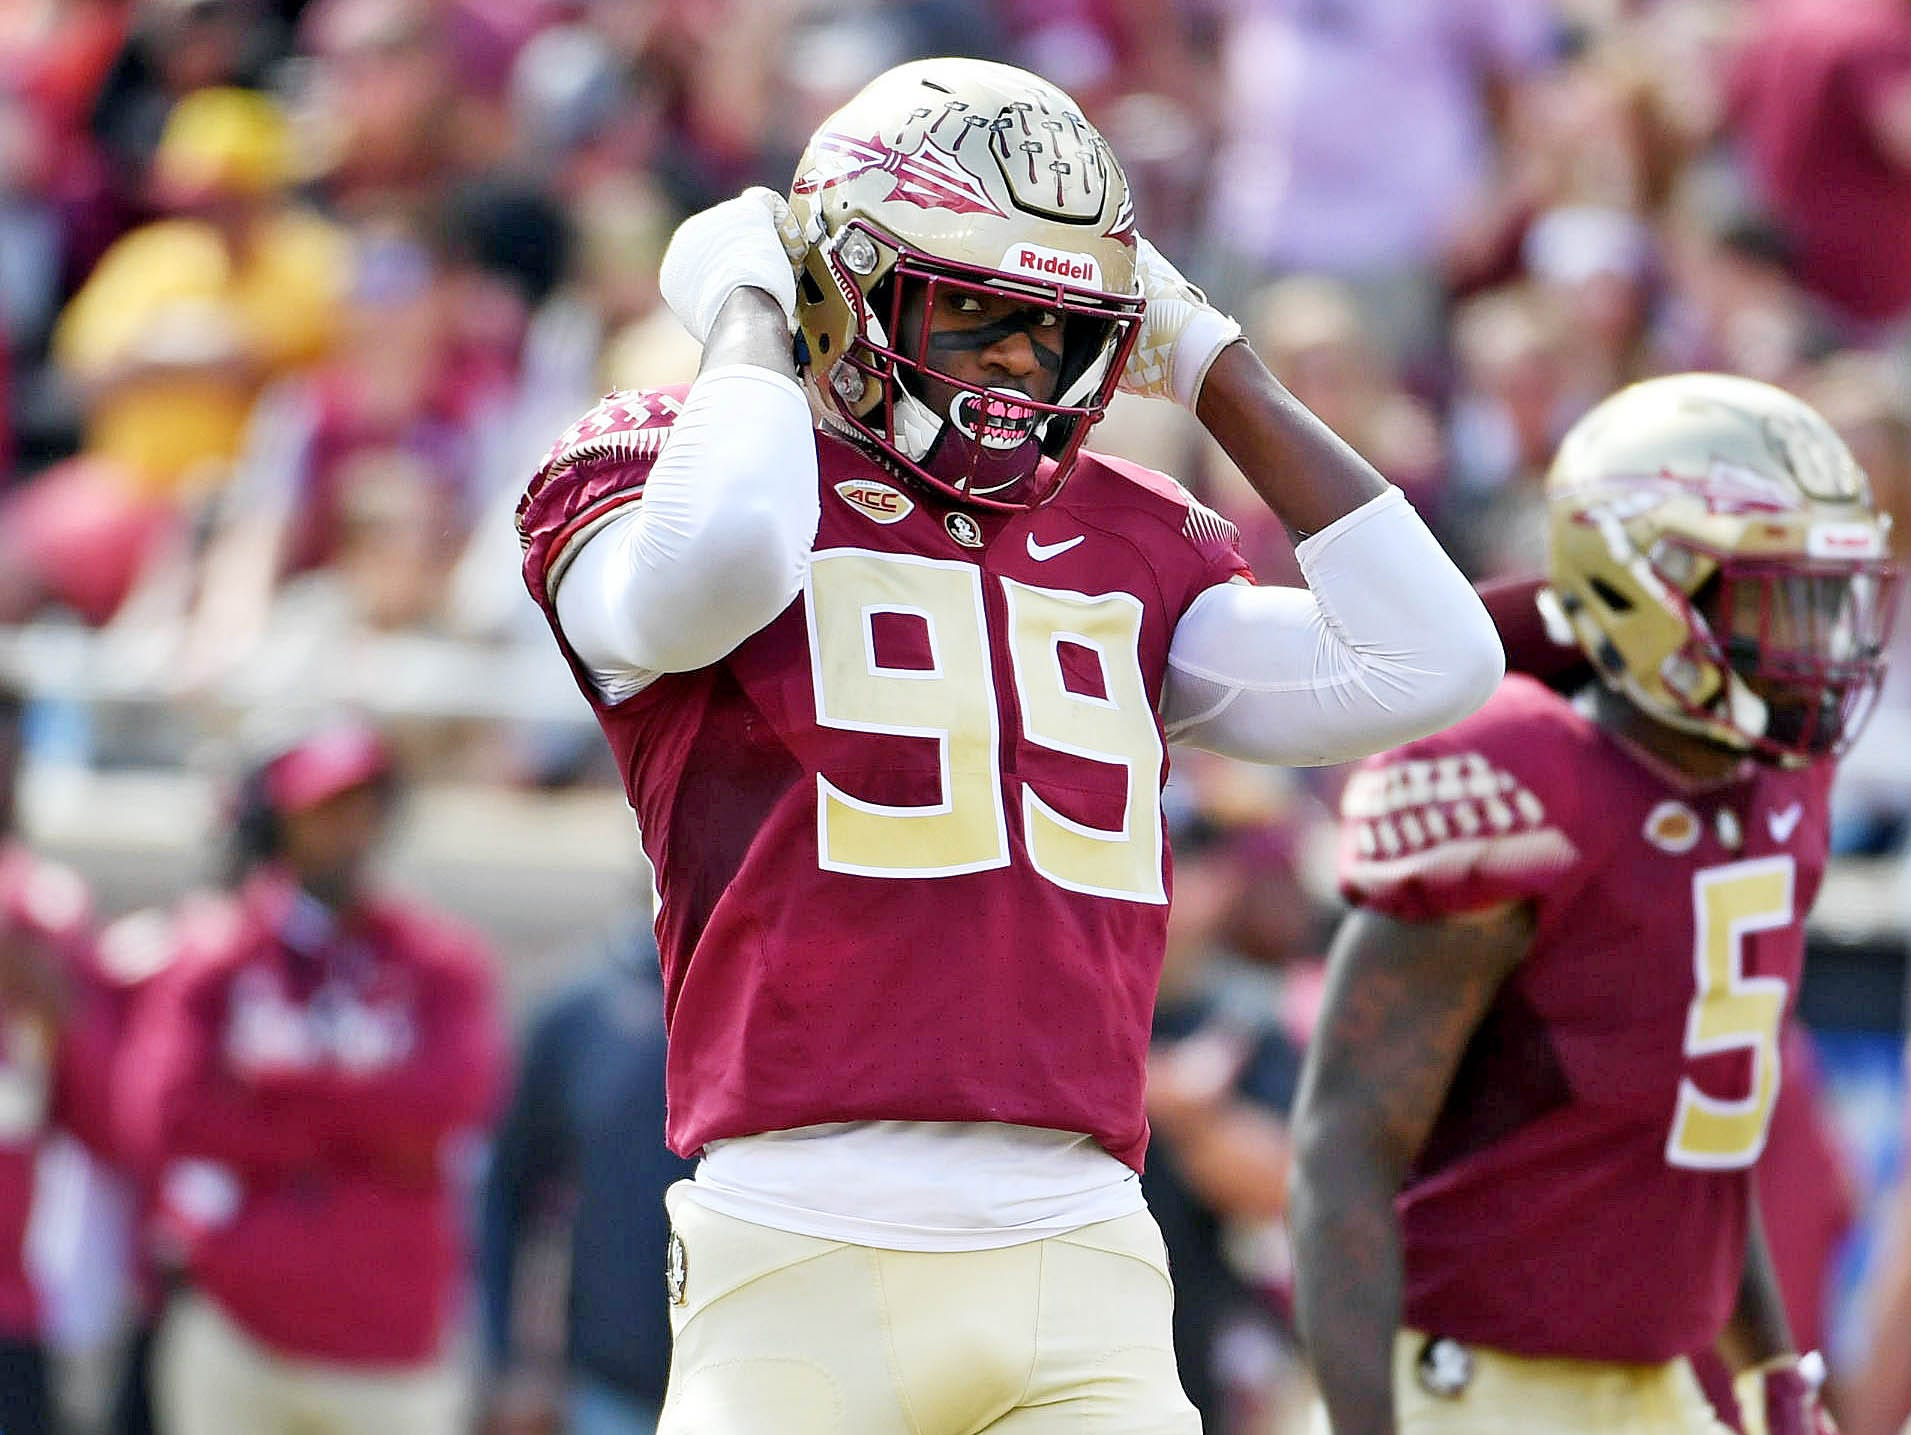 Oct 27, 2018; Tallahassee, FL, USA; Florida State Seminoles defensive end Brian Burns (99) during the first half against the Clemson Tigers at Doak Campbell Stadium. Mandatory Credit: Melina Myers-USA TODAY Sports